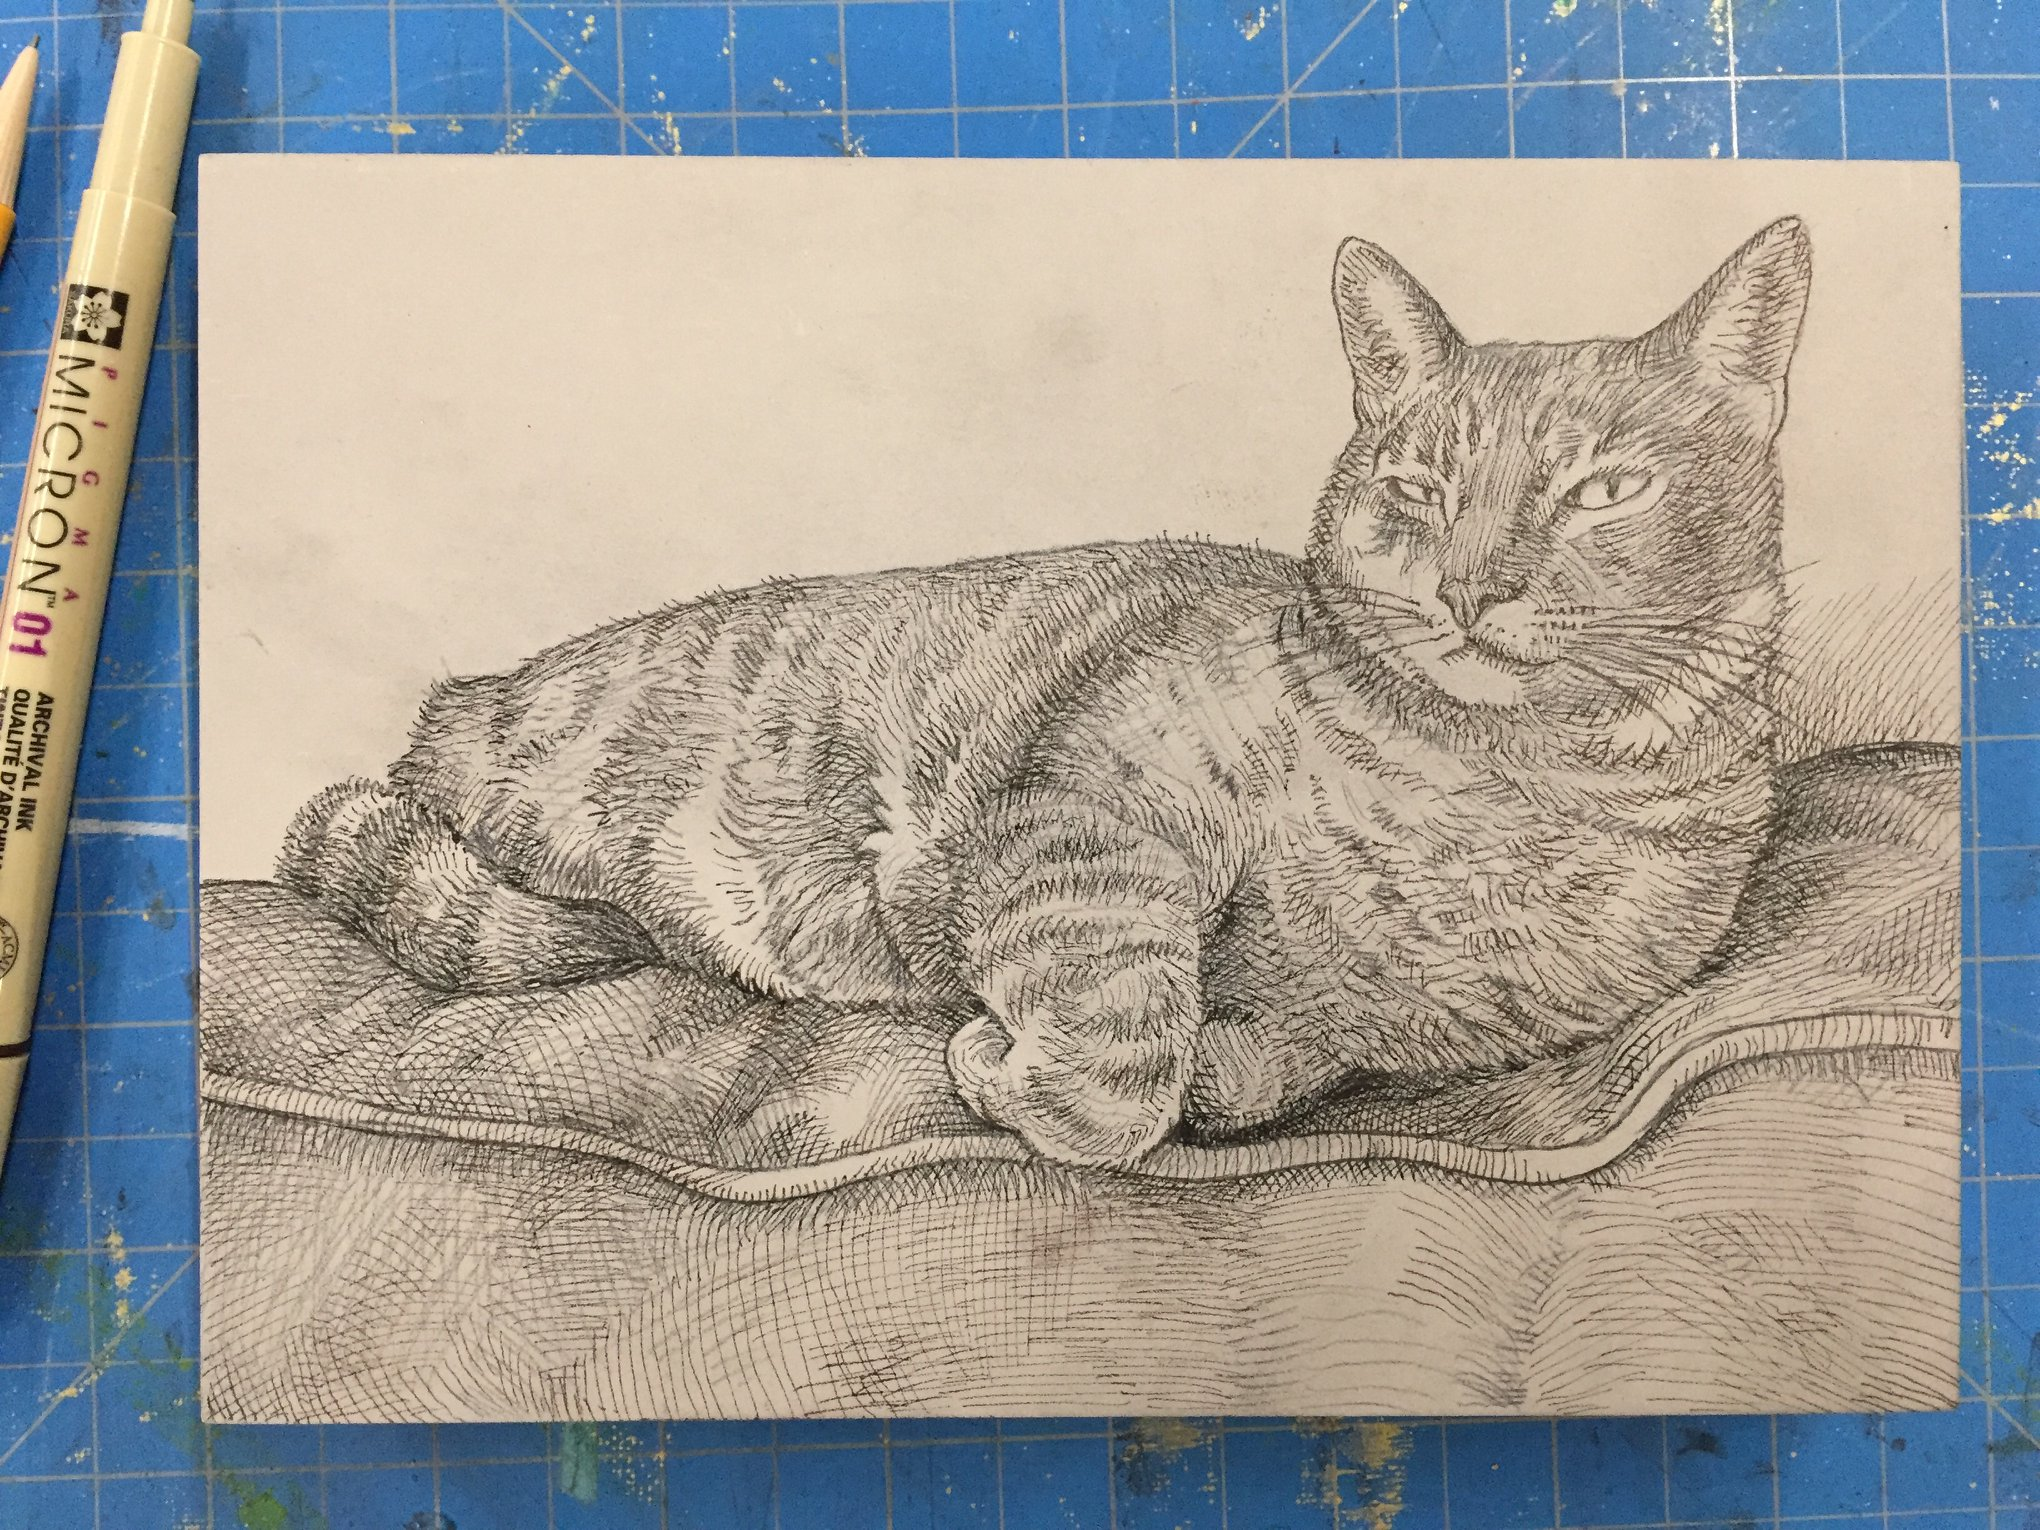 """Here is the drawing of Sliver, sitting on the top of the leather sofa, on the 5""""x7"""" mounted linoleum block.  I used the copy machine to print the reference photo that I took of Sliver. It was output at the size of the block I am using. I traced the photo with carbon paper to transfer the basic shapes and proportions onto the block. I refined the tracing by drawing with pencil. Then I drew over the pencil drawing with a fine permanent marker. I used a Pigma Micron 01 pen. It is important to use a pen that will not wash away or smear when you clean the block. After I carve and am ready to print, I will have to clean the block and this will remove the pencil so the graphite does not transfer into the ink."""